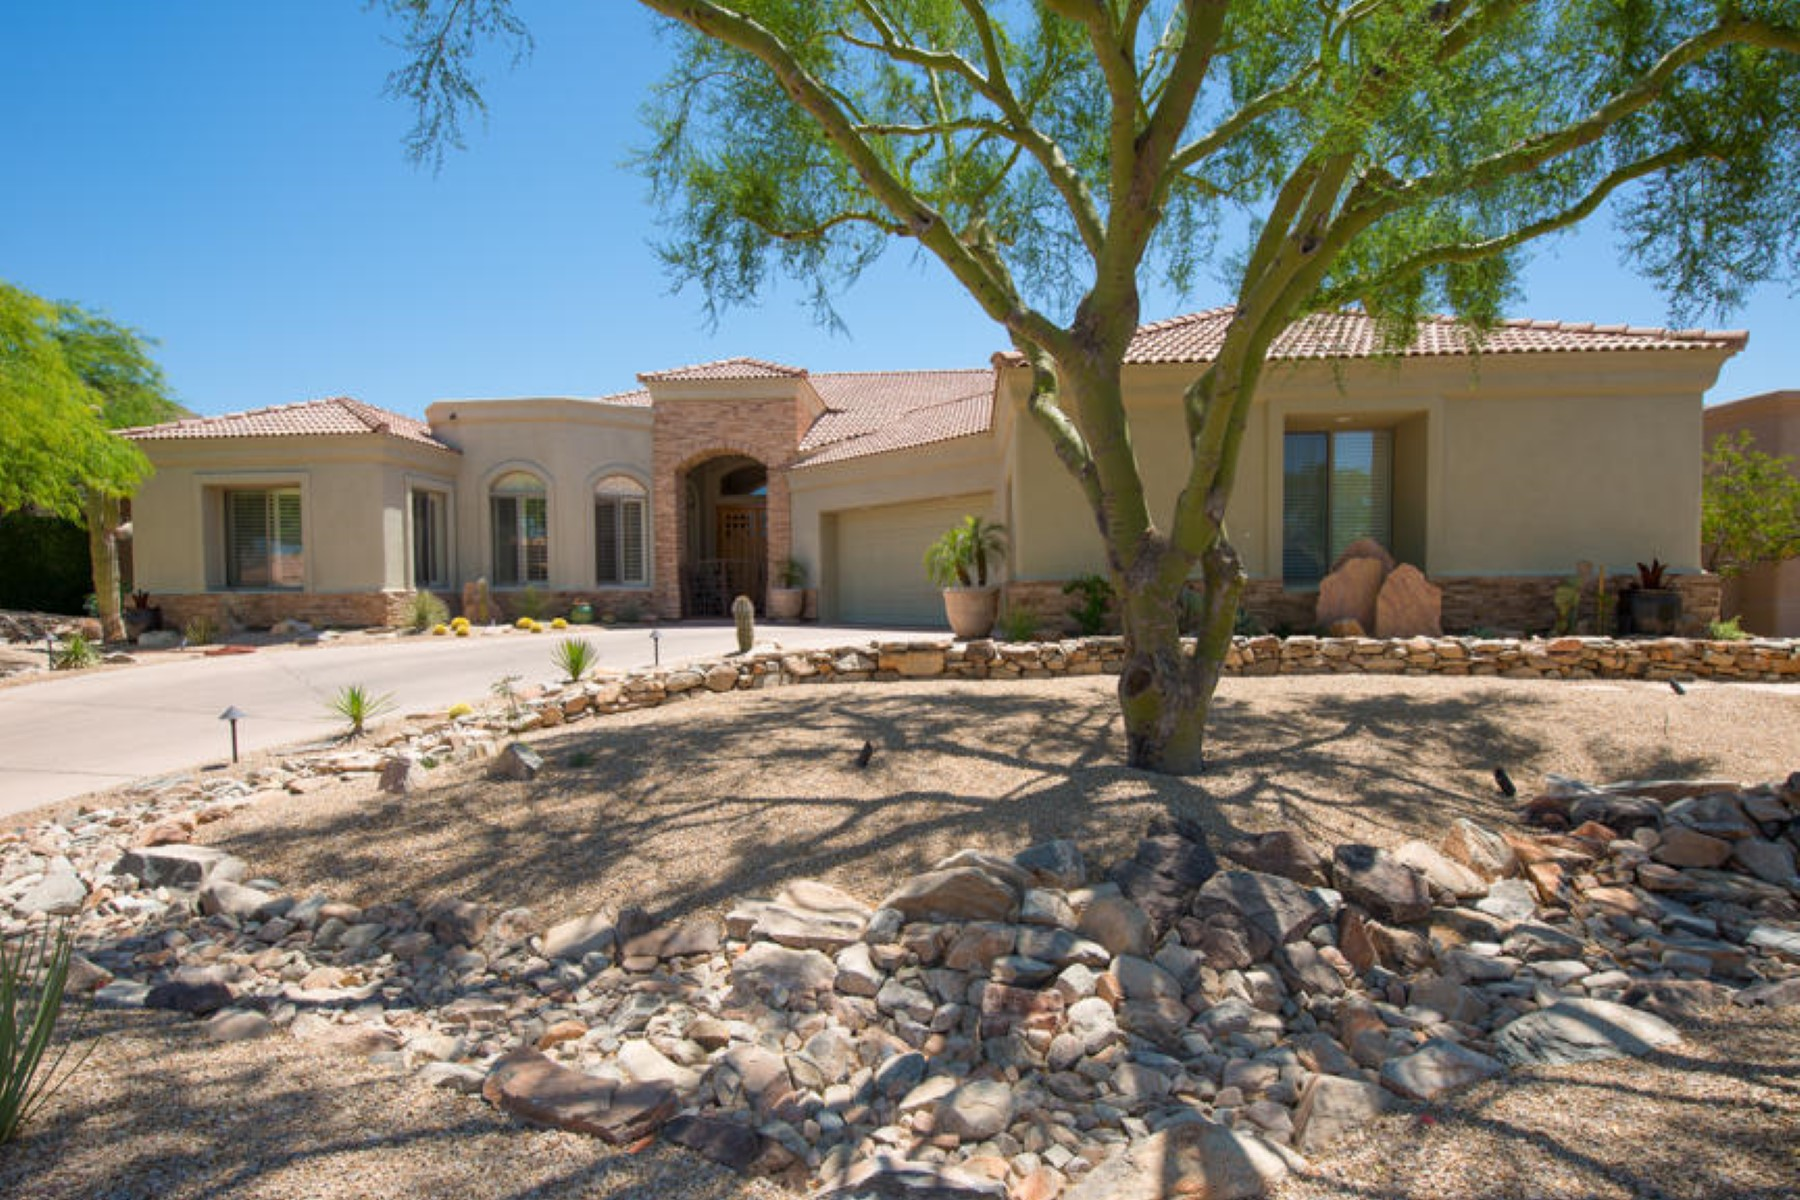 Single Family Home for Sale at Custom Built Home In Guard Gated Ancala 12357 N 116th Street Scottsdale, Arizona 85259 United States